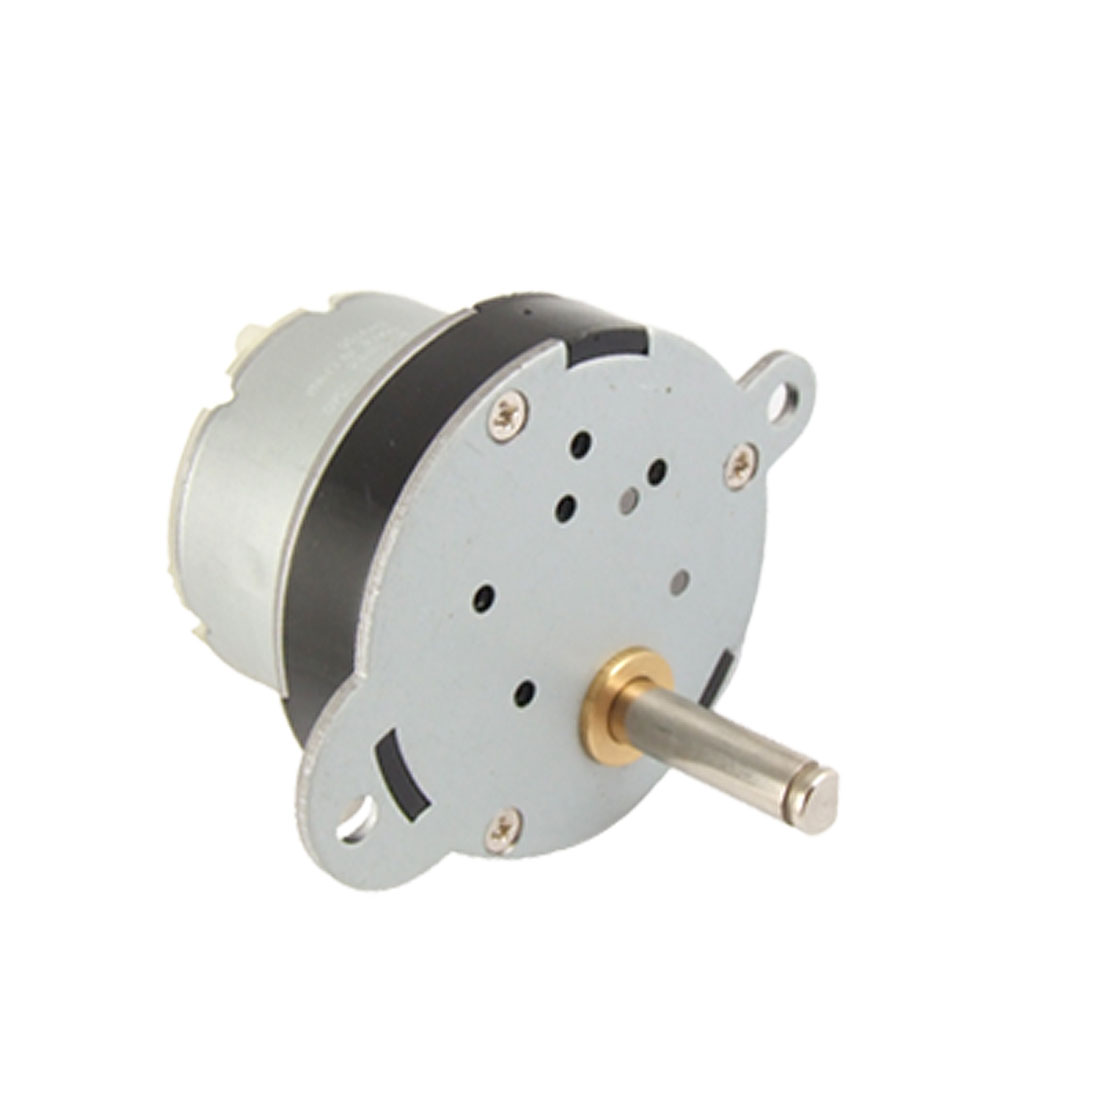 40mm Diameter Gearbox 140RPM 12V 0.23A DC Geared Motor